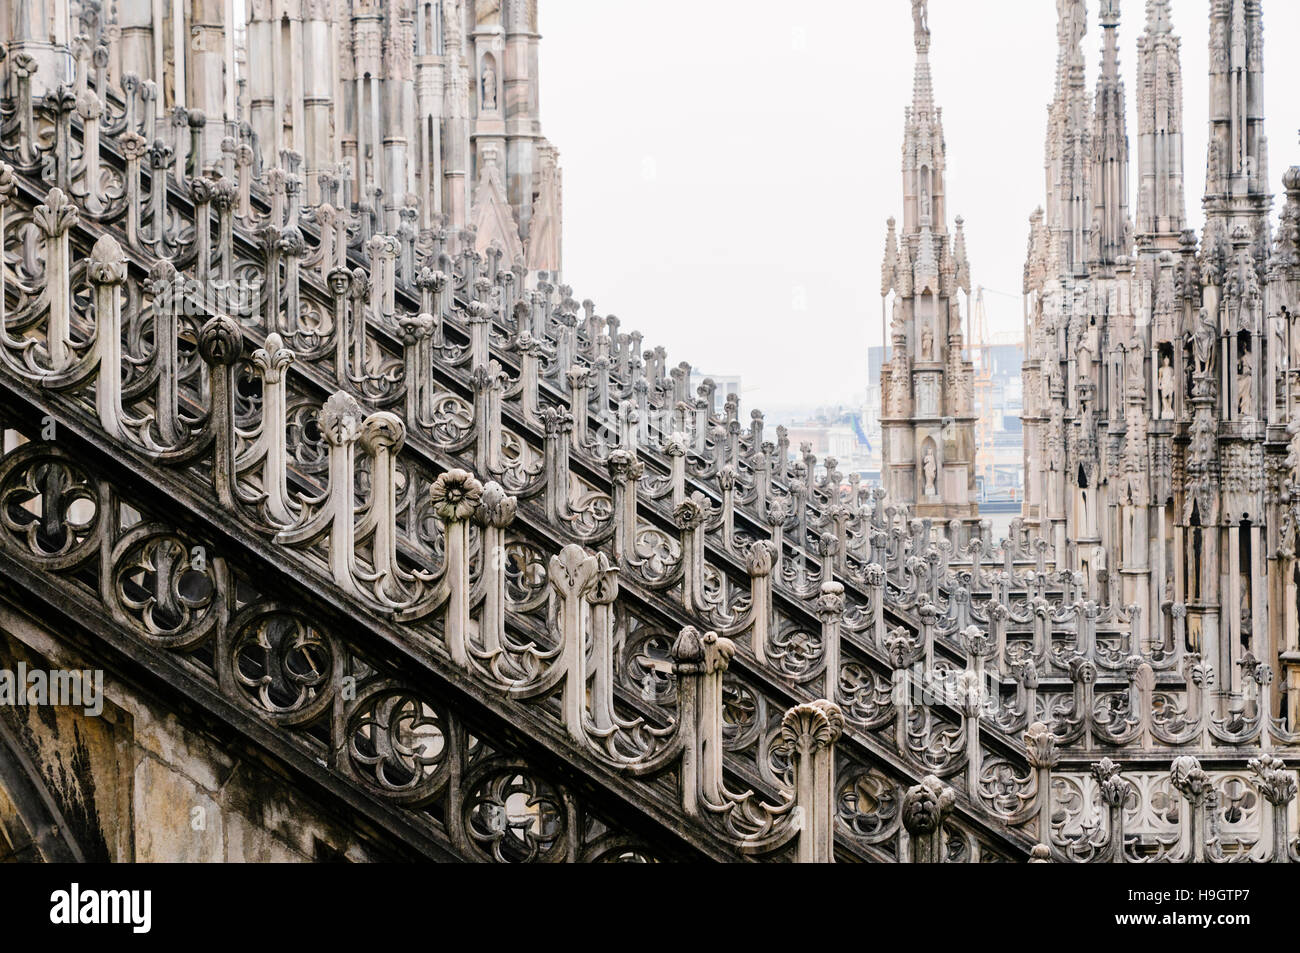 flying buttress stock photos  flying buttress stock images  alamy - flying buttress and ornately carved stonework on the roof of the duomomilano (milan cathedral